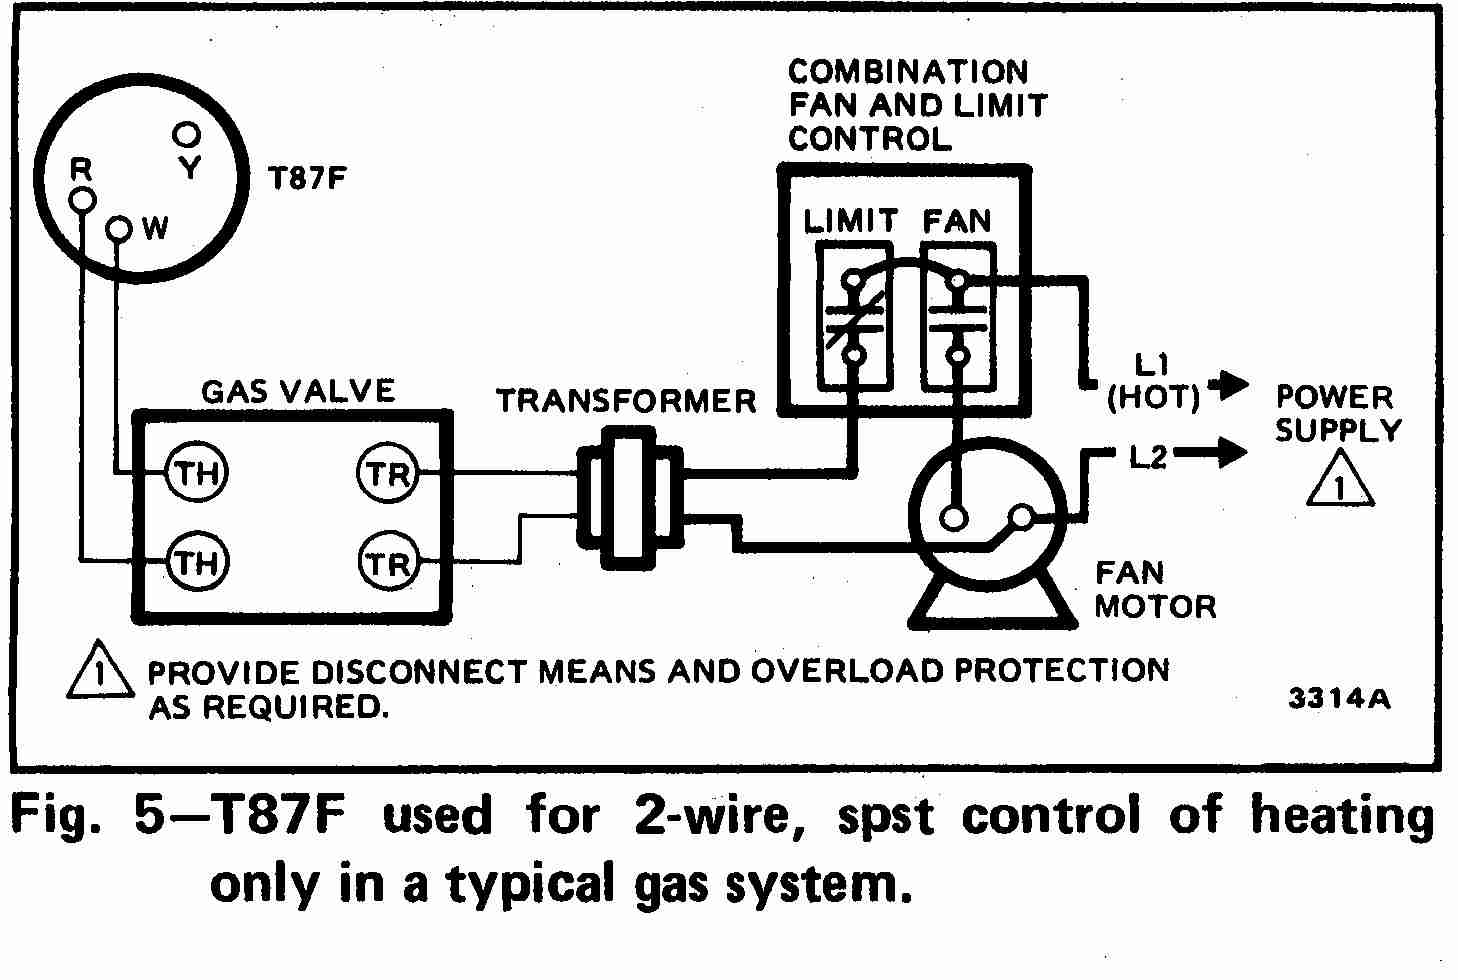 TT_T87F_0002_2Wg_DJF room thermostat wiring diagrams for hvac systems Marley Electric Baseboard Heaters Wiring at alyssarenee.co